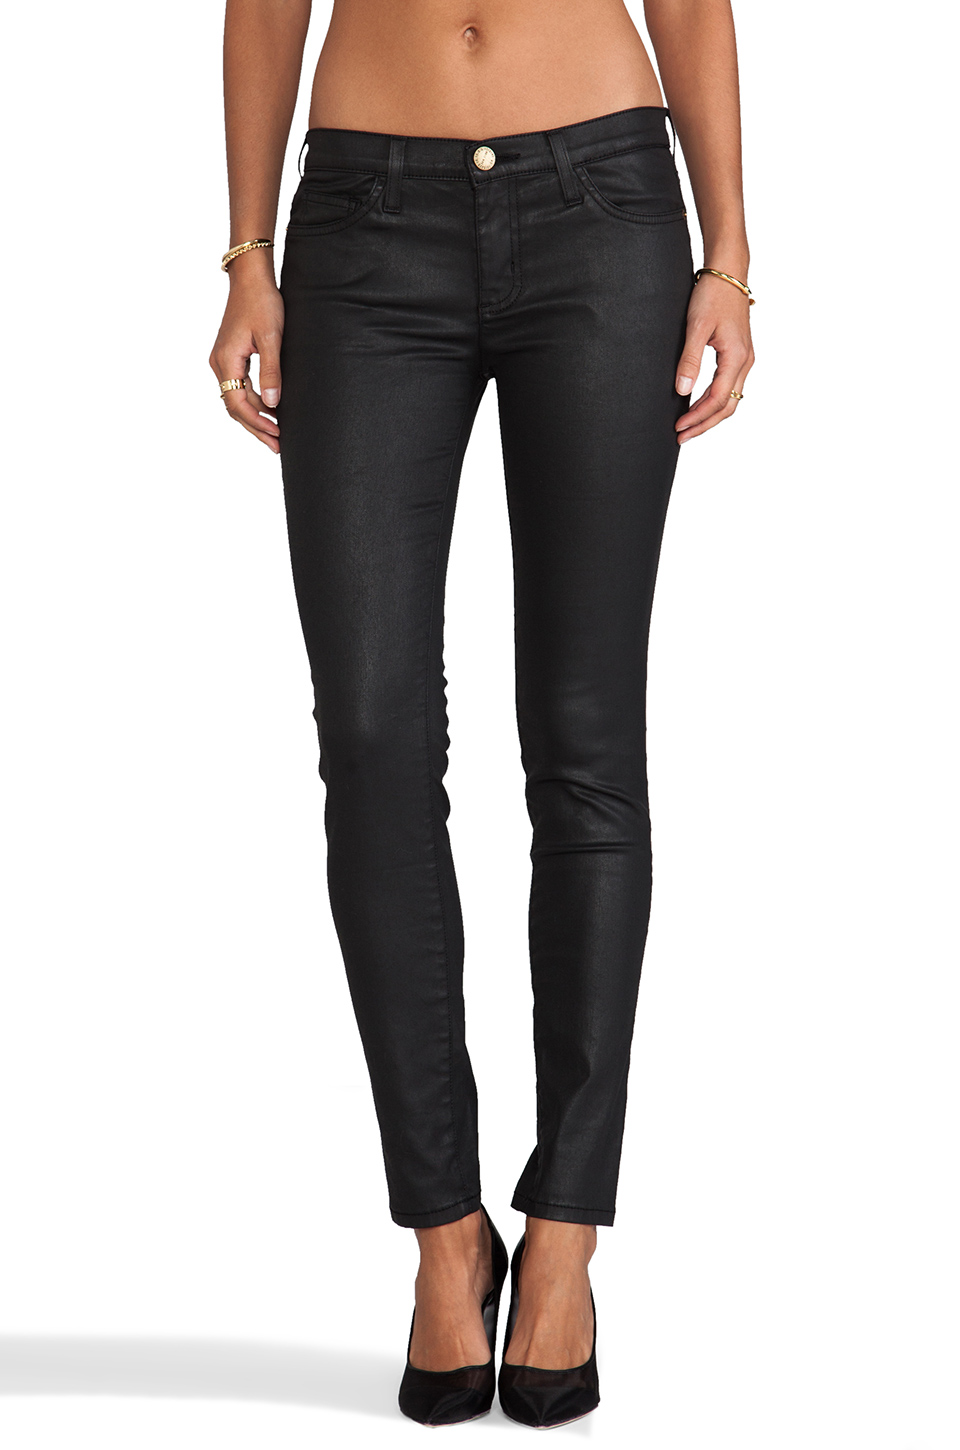 Current/Elliott The Ankle Skinny in Black Coated | REVOLVE